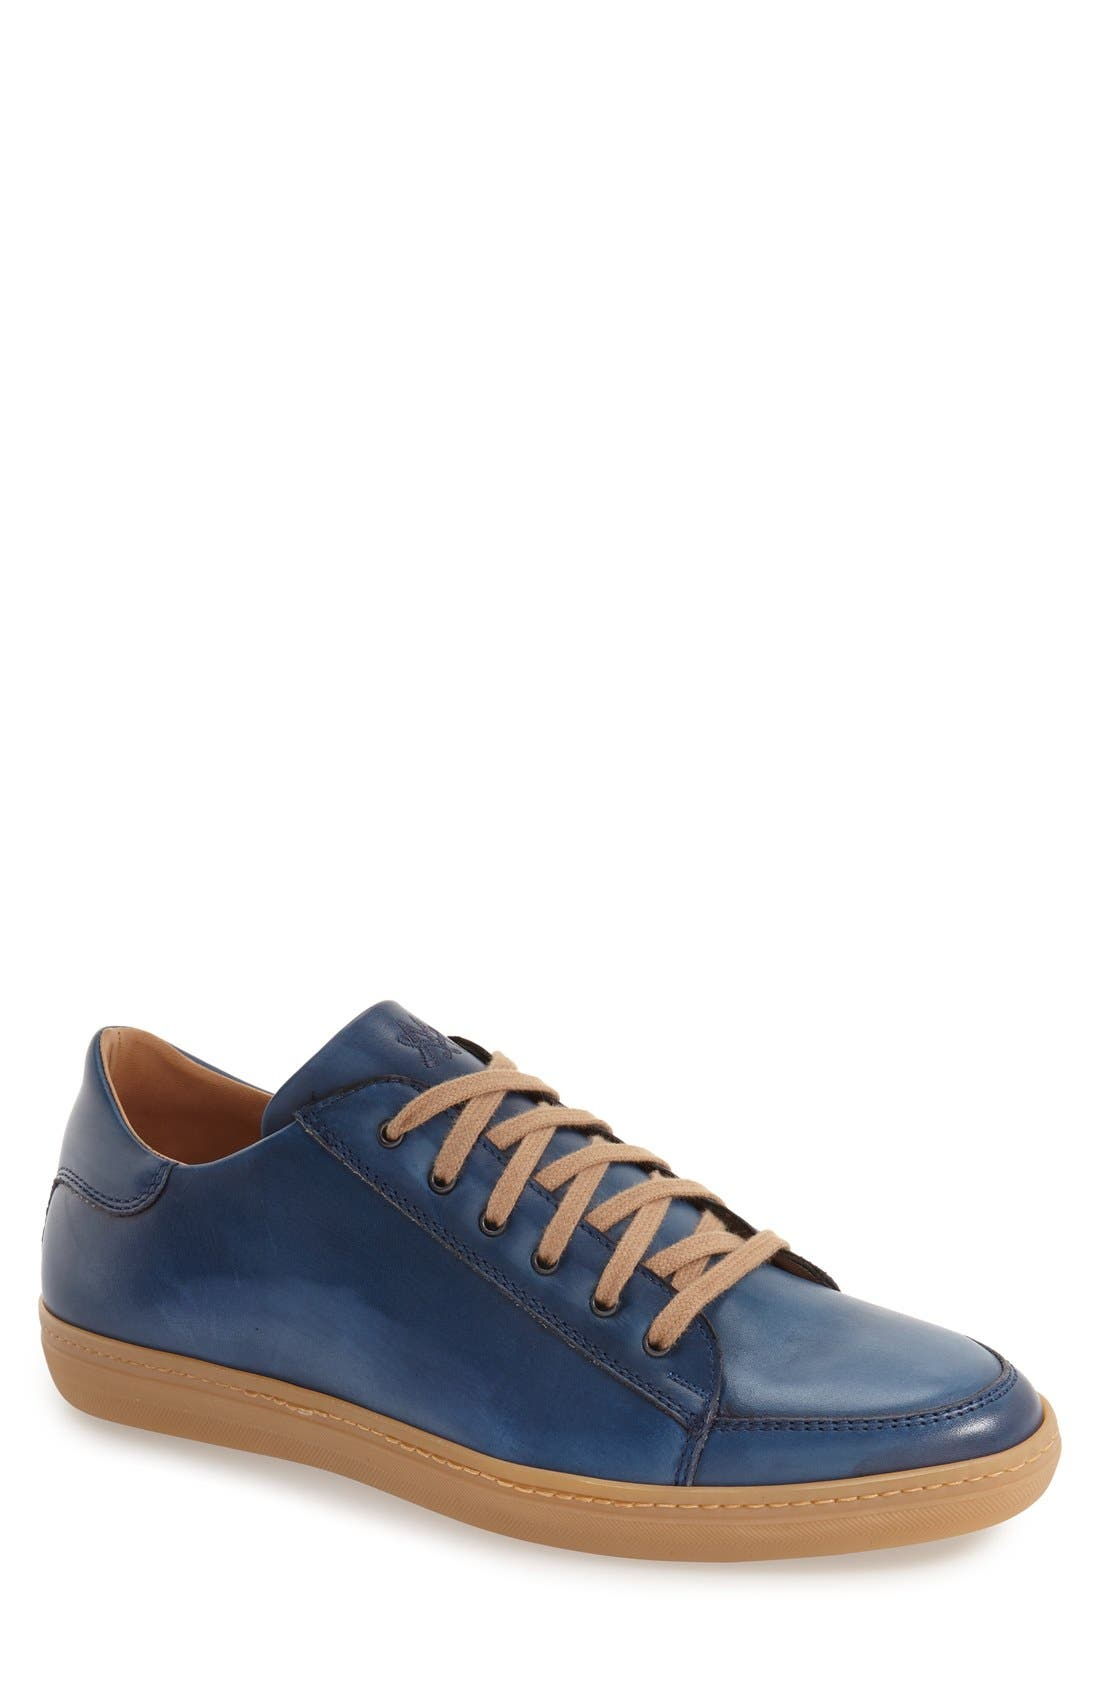 'Masi' Lace-Up Sneaker in Blue